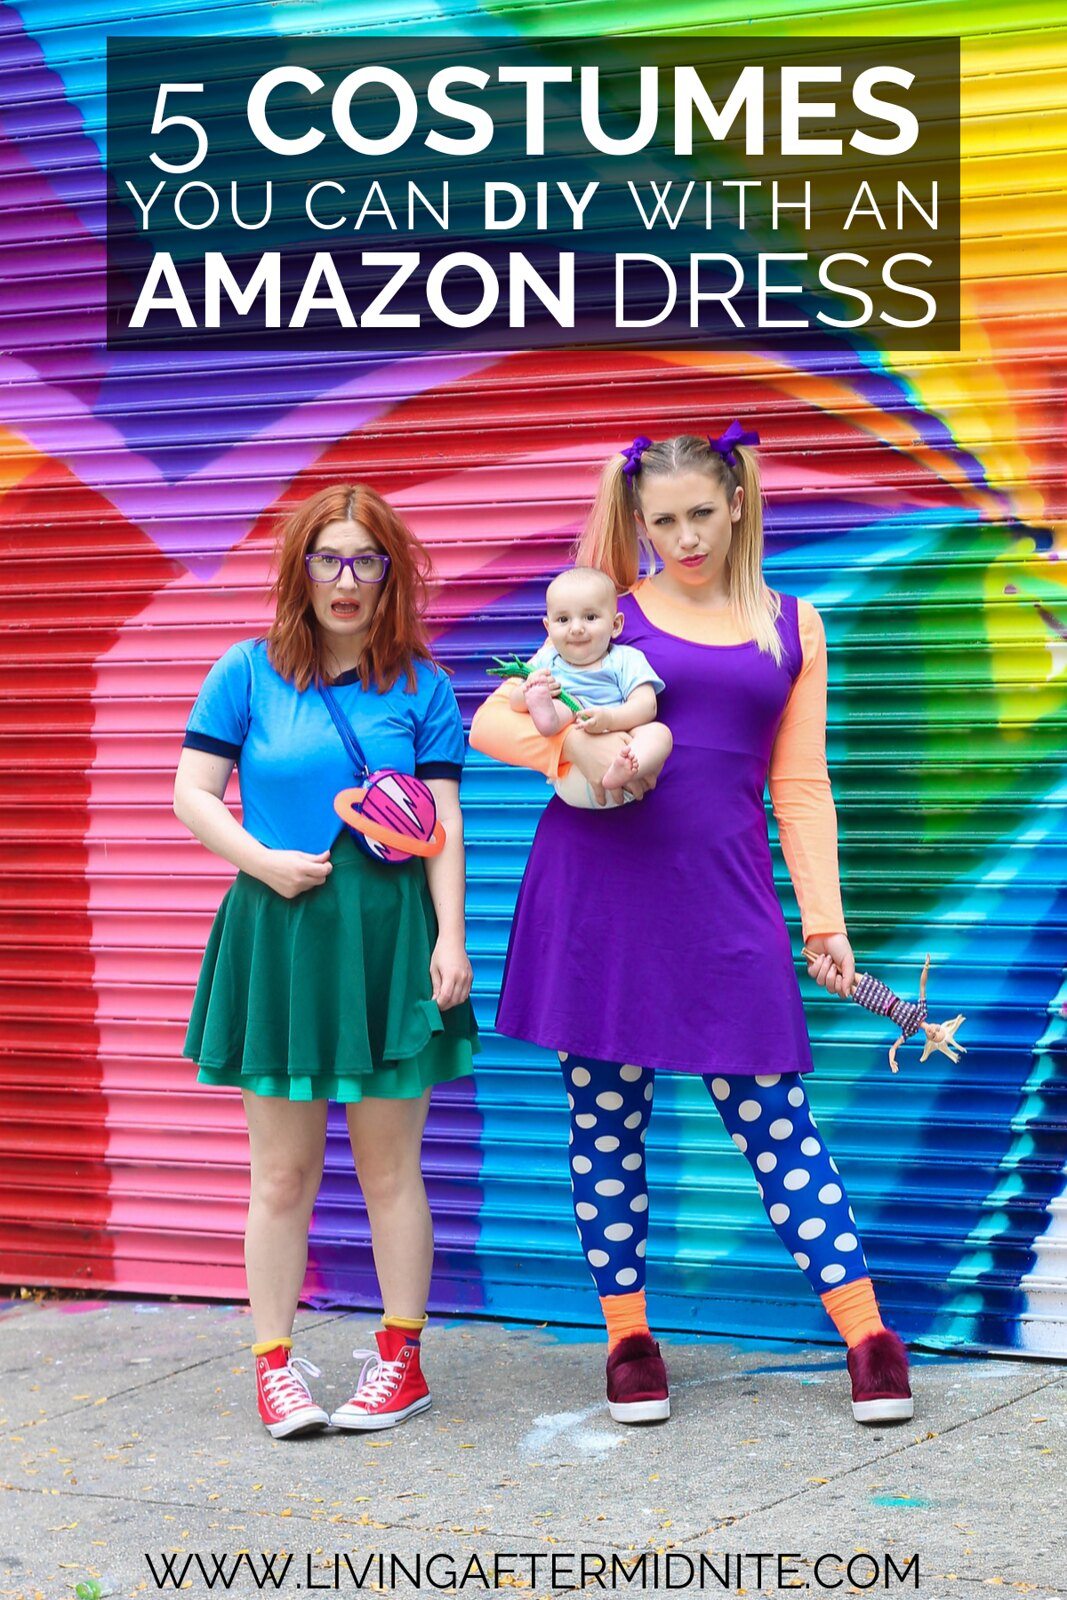 Rugrats Angelica Chuckie Tommy Pickles Costume Nickelodeon | 5 Costumes You Can DIY with an Amazon Dress | Easy DIY Halloween Costumes